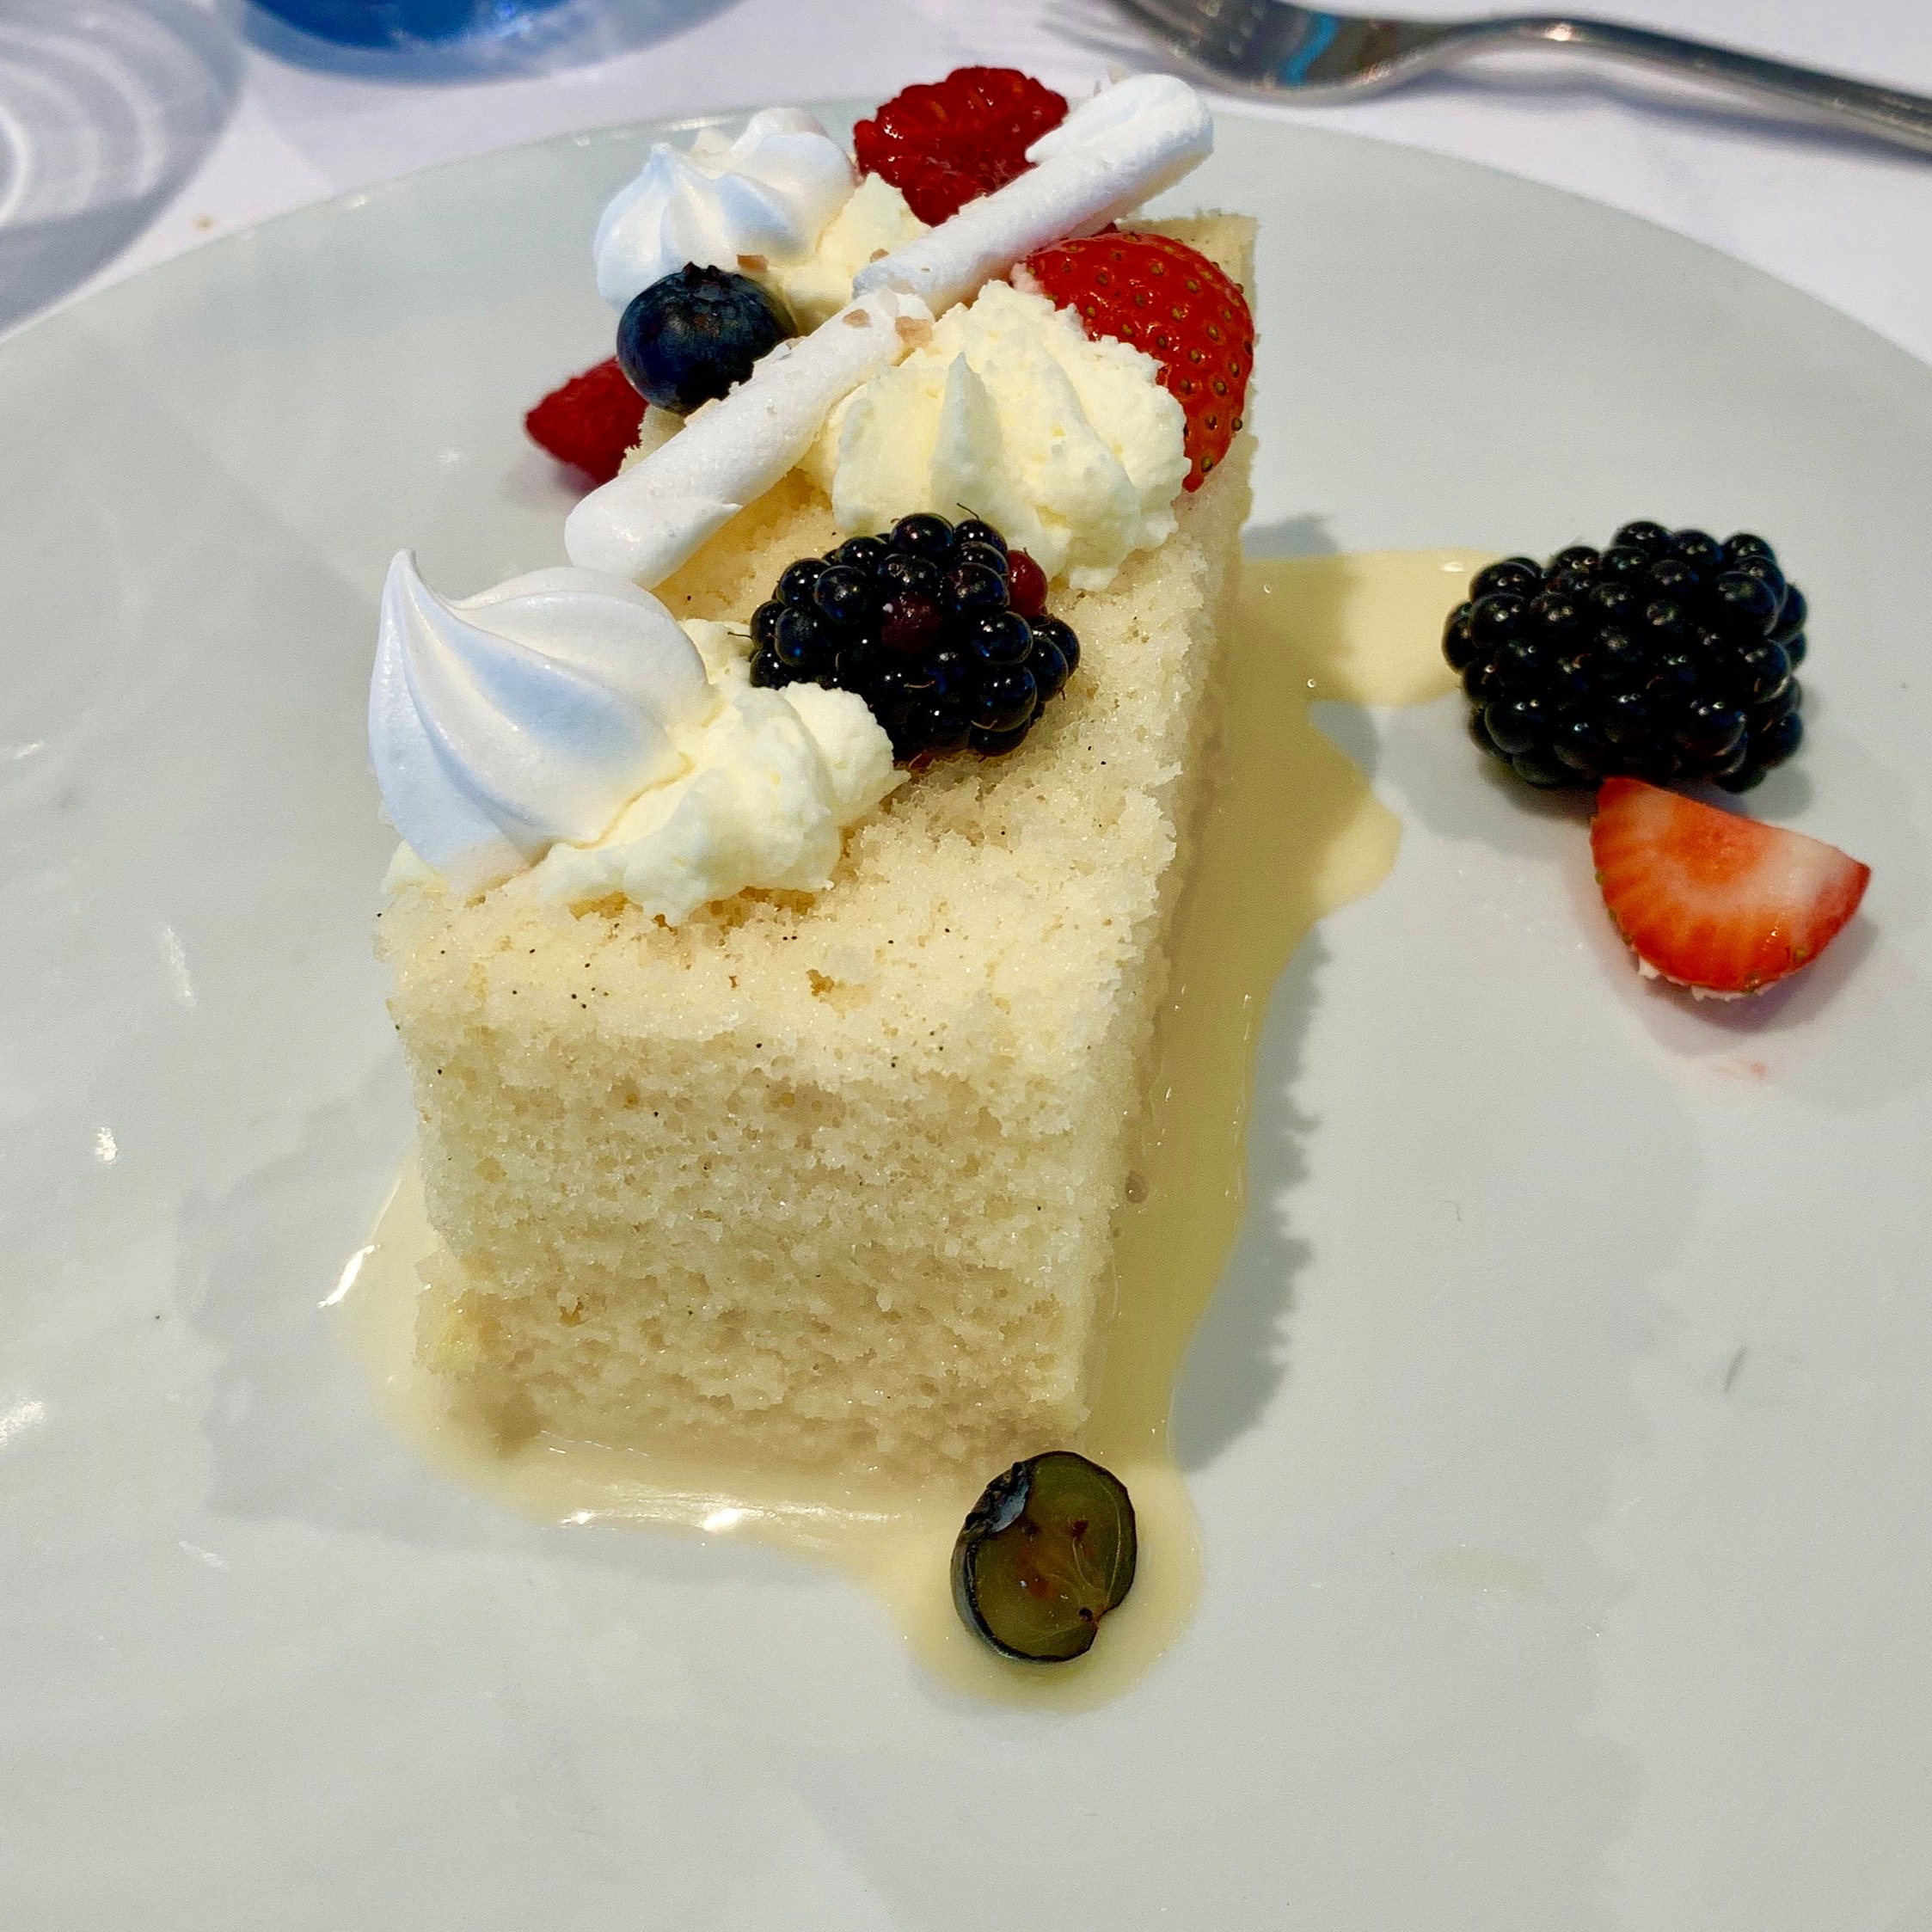 Don't be deceived by this rather simple looking dessert - it was a light, vanilla-infused slice of heaven!